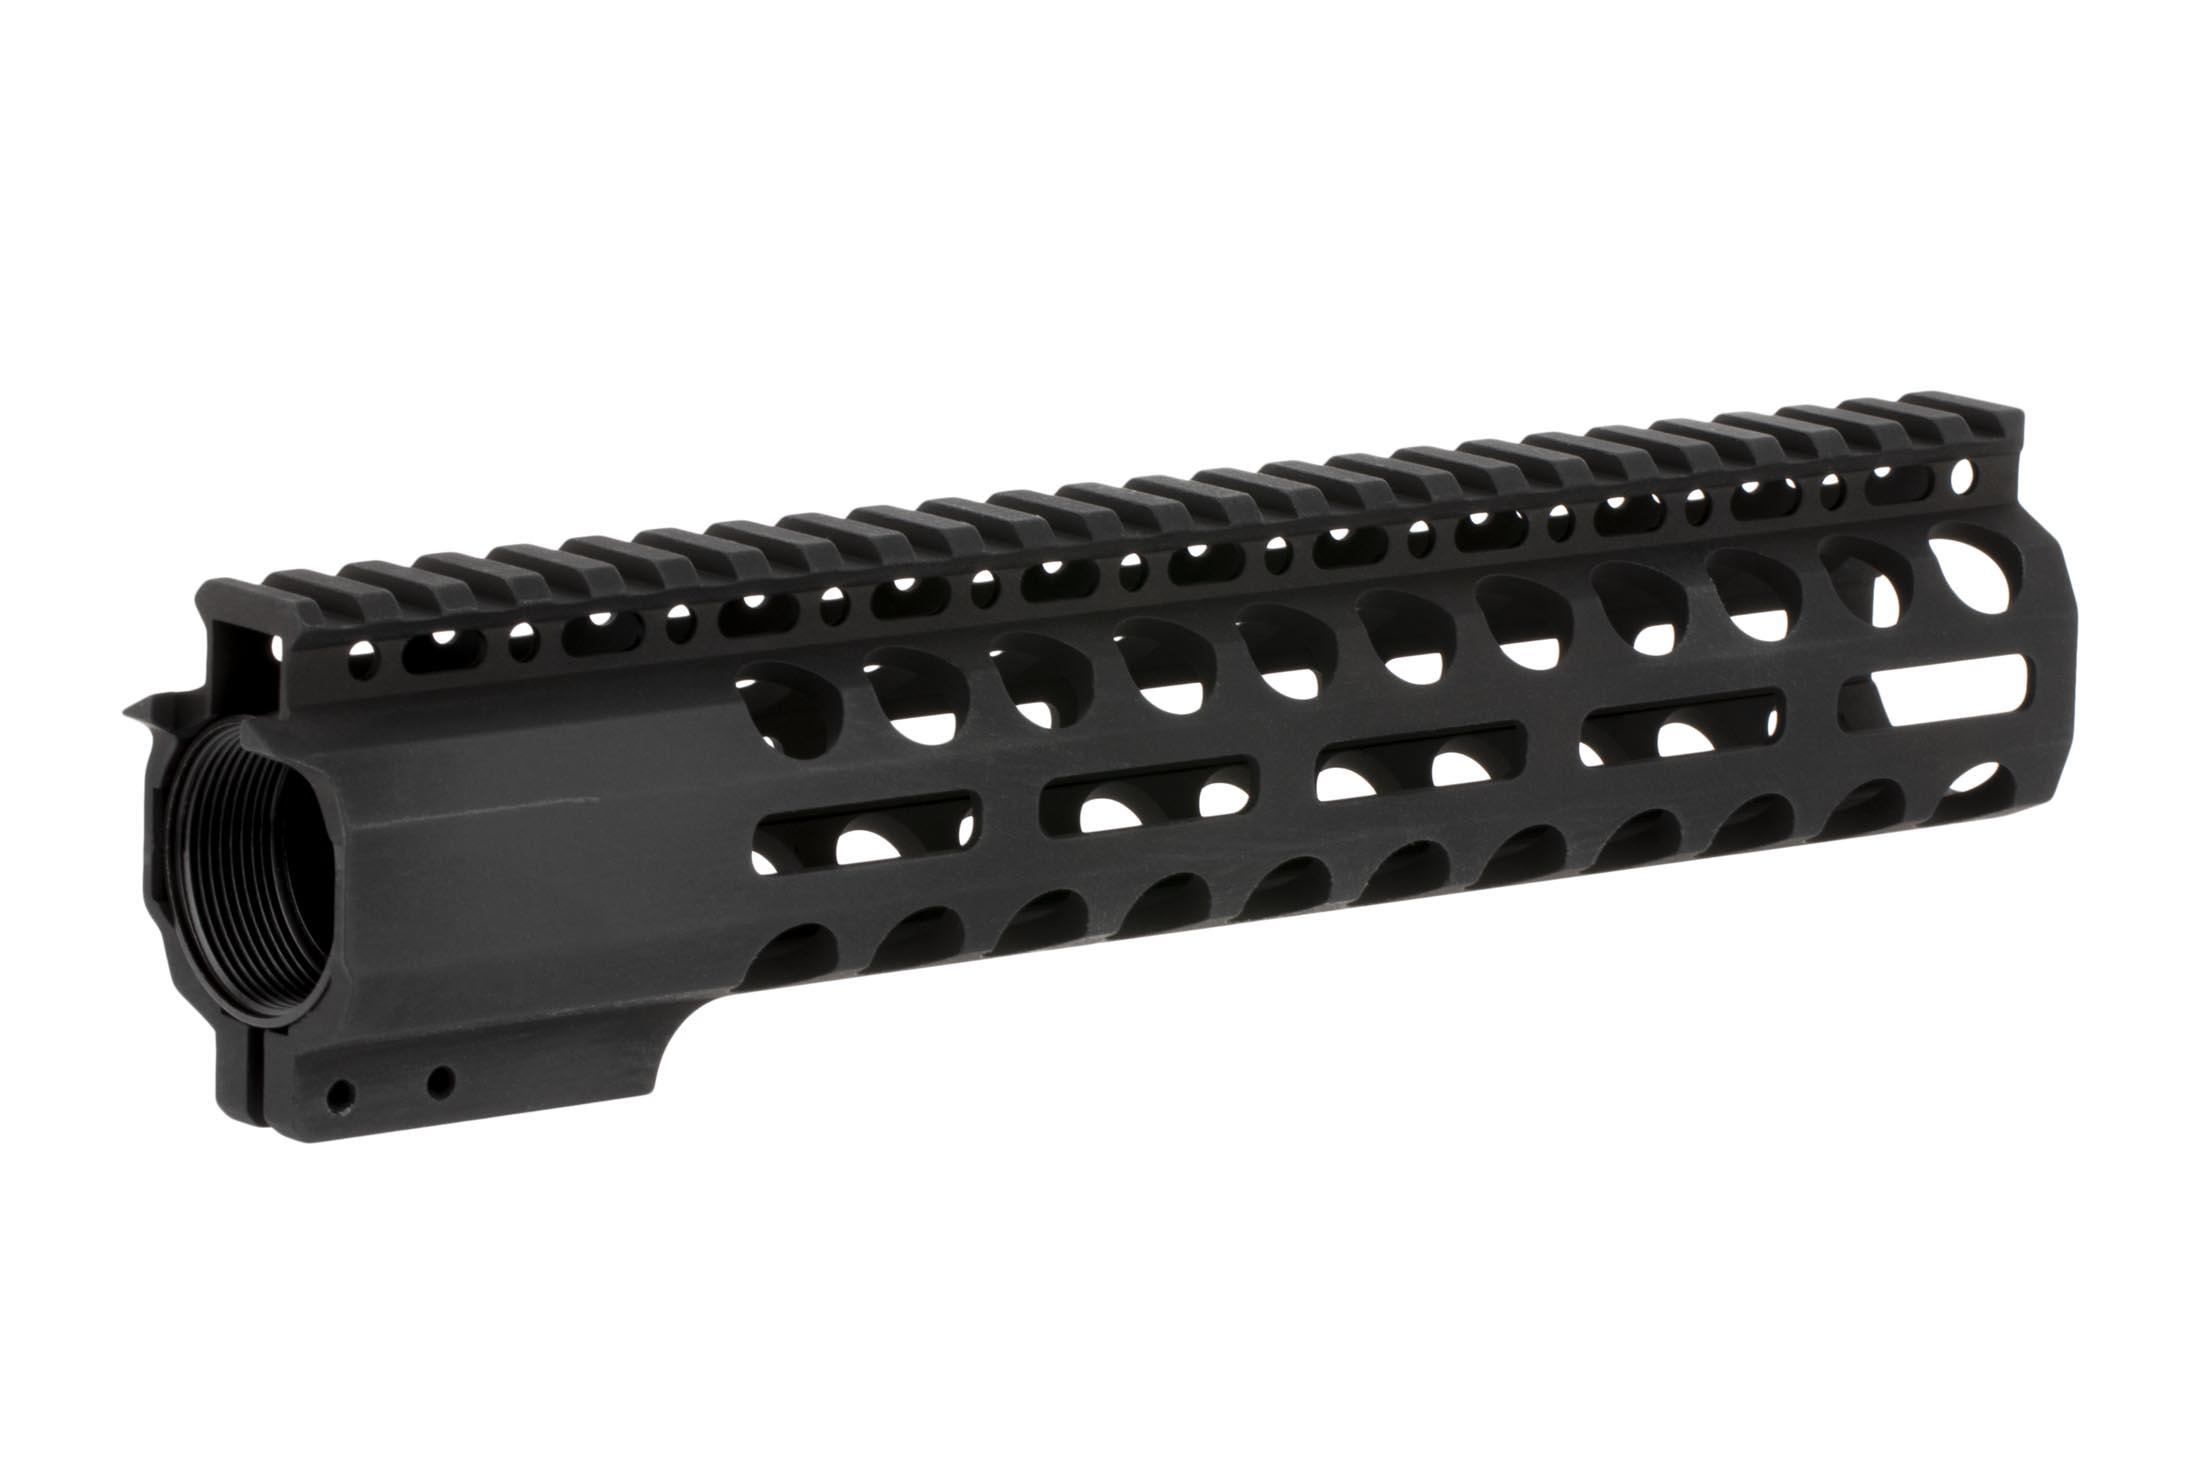 Radical Firearms 10 in Primary Arms Exclusive M-LOK rail with 3rd gen mounting system with anti-rotation tabs and a 4140 steel barrel nut